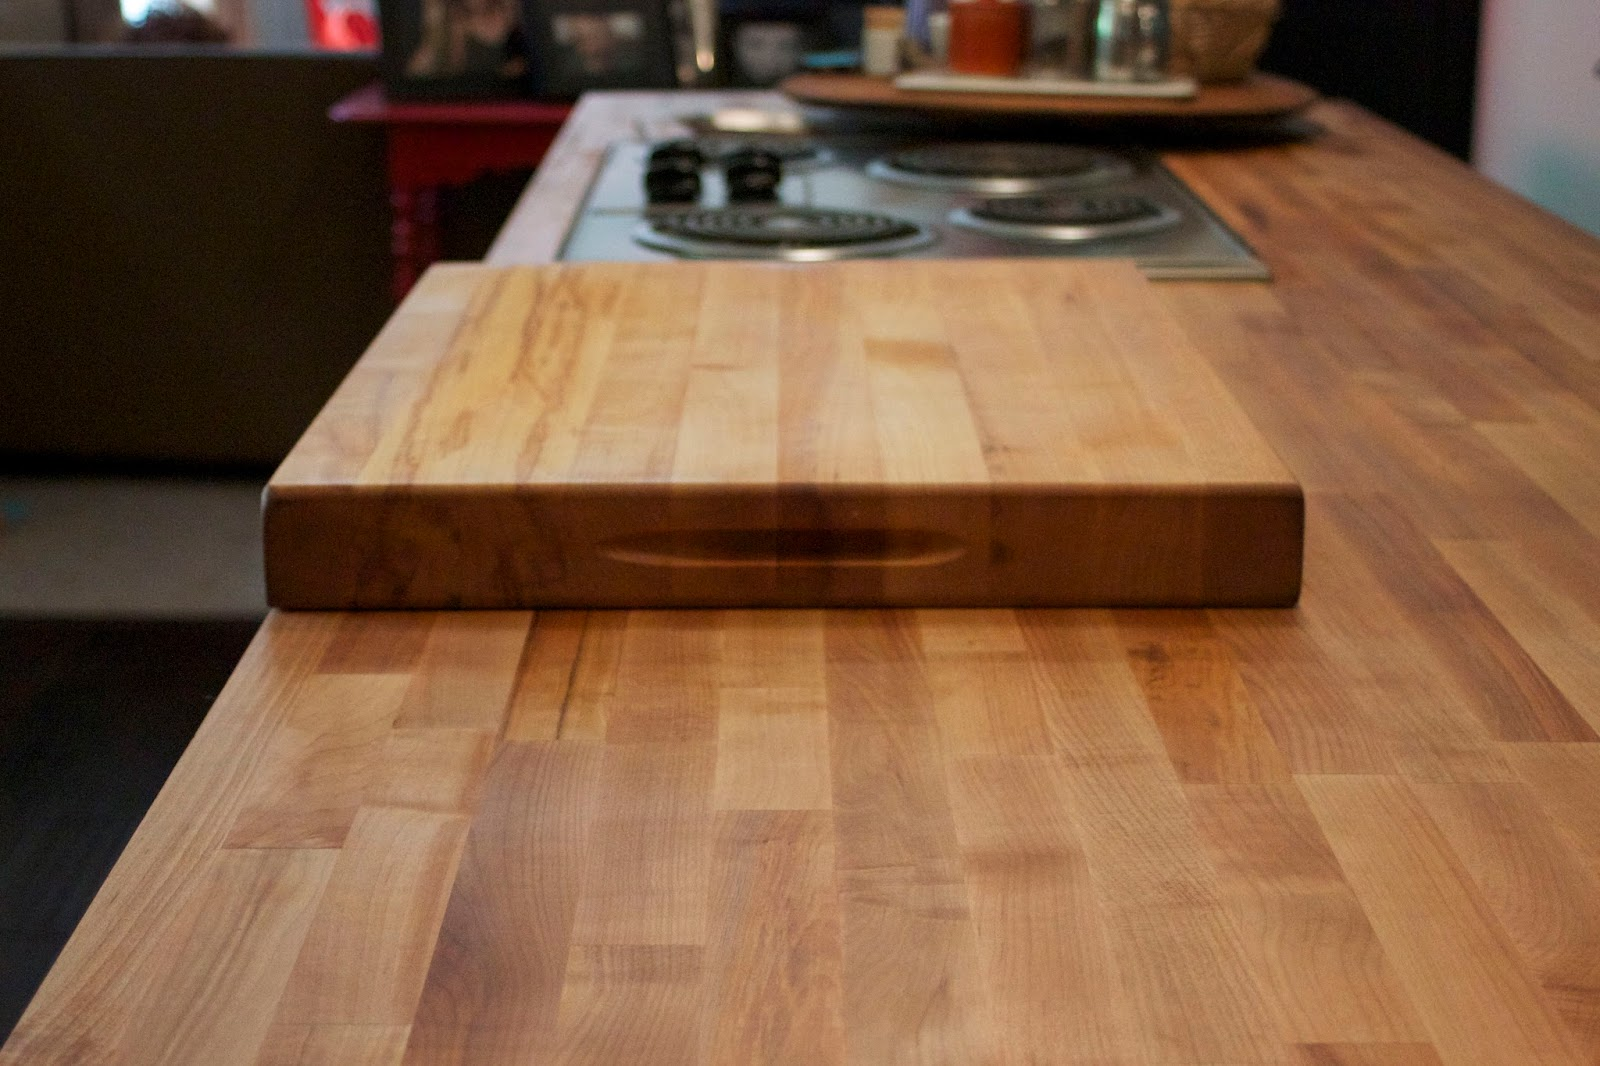 How To Clean And Protect Butcher Block Cutting Boards And Countertops Shoutingforha